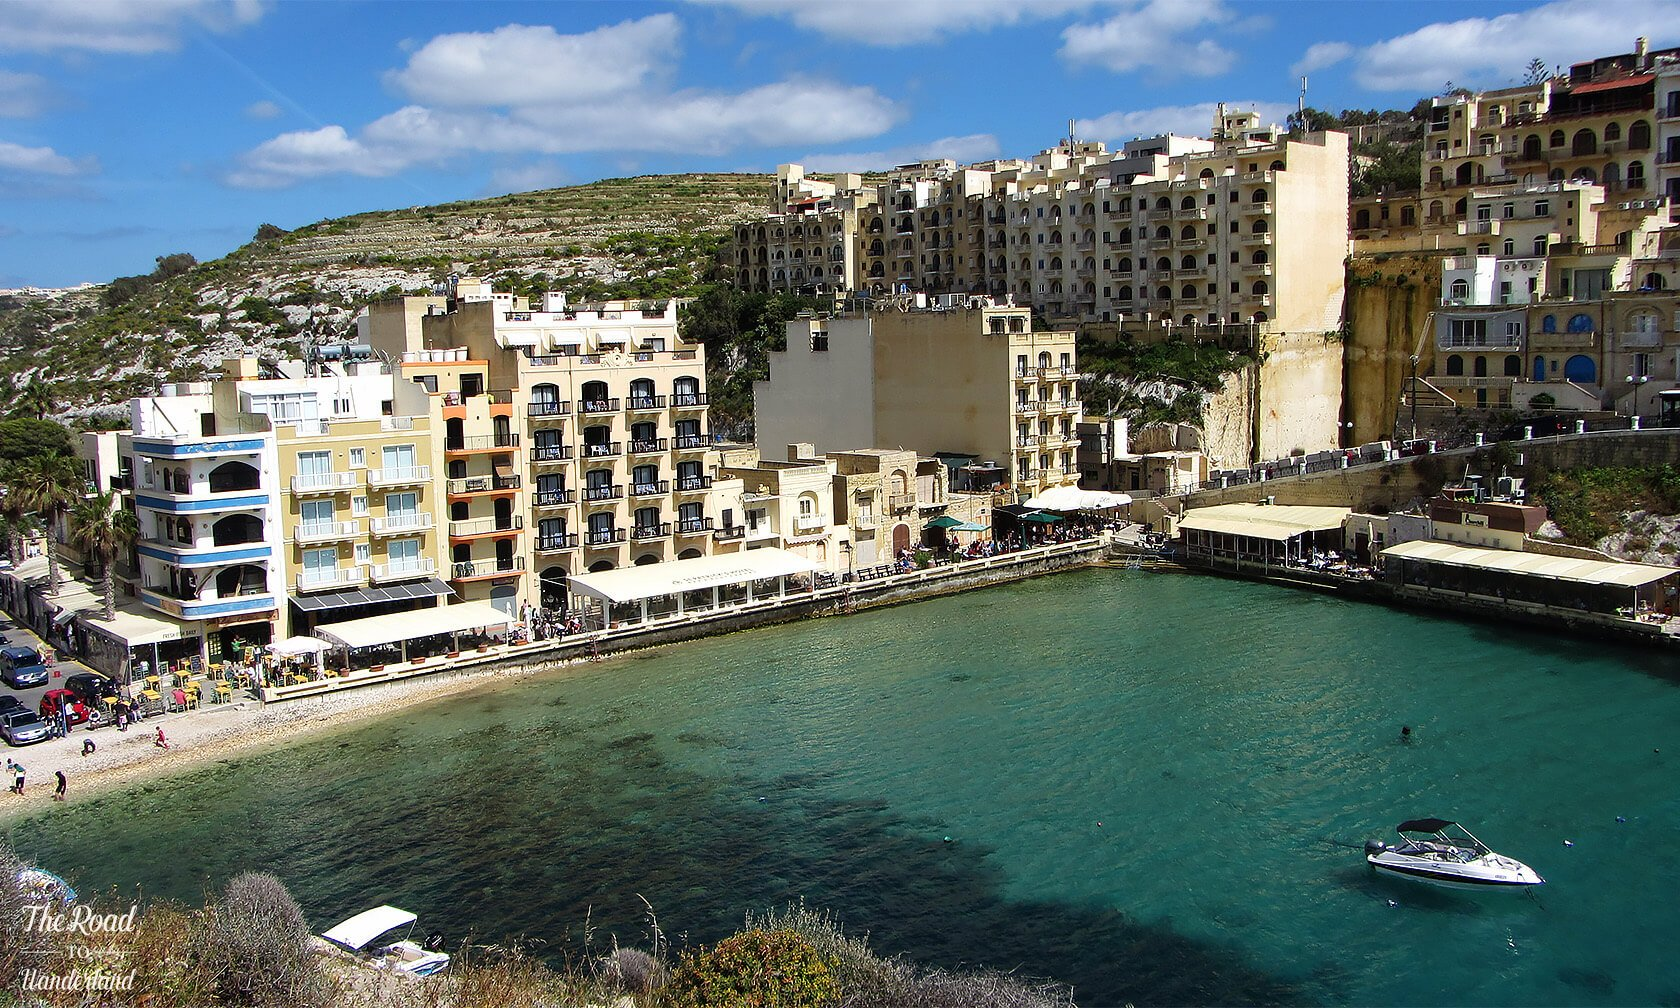 The gorgeous fishing village of Xlendi, Gozo